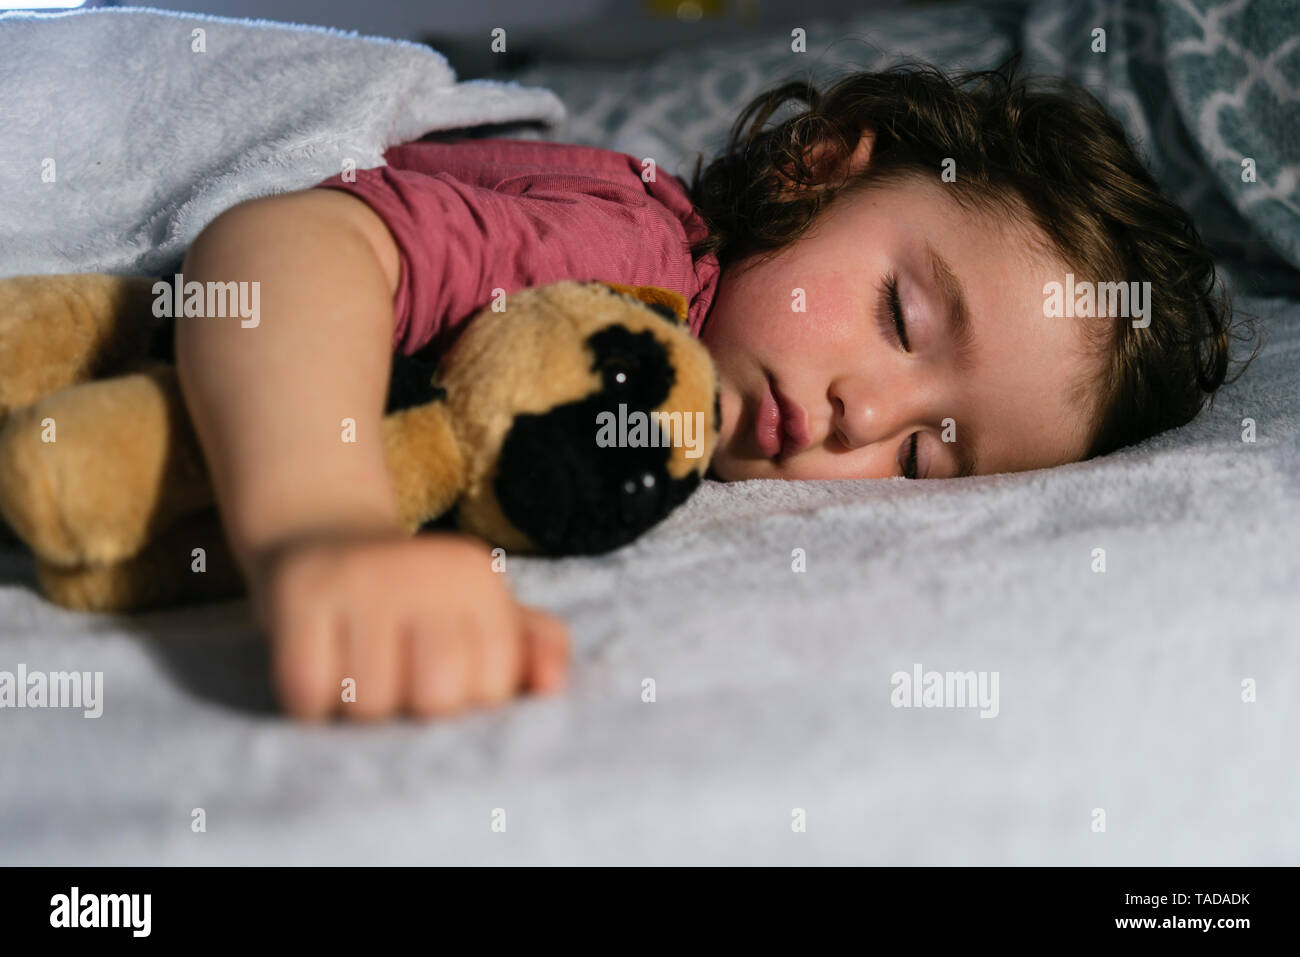 Portrait of toddler girl sleeping in bed  with a soft toy dog - Stock Image